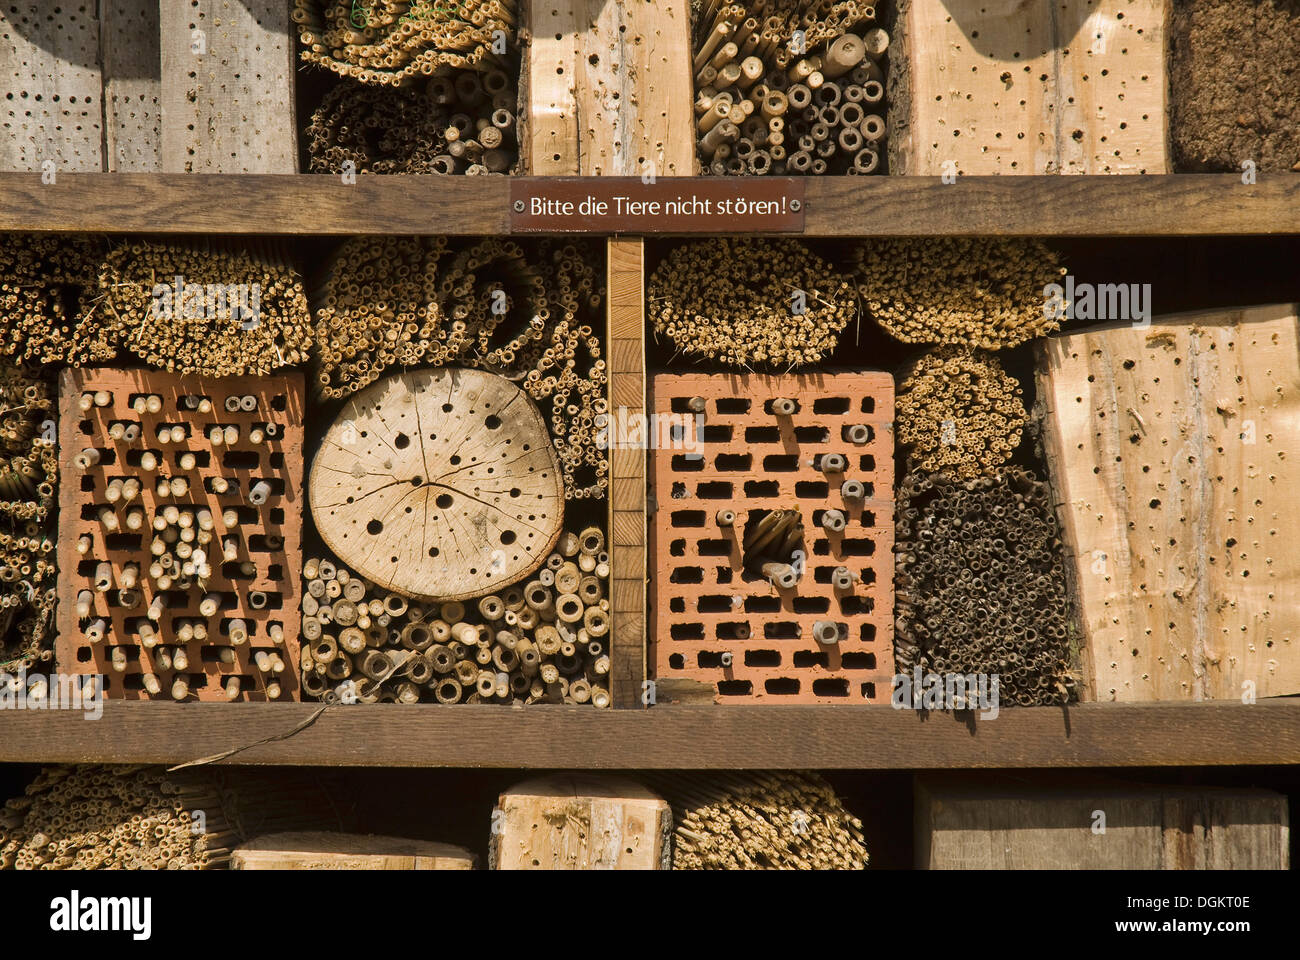 Hotel for insects, aid for nesting - Stock Image